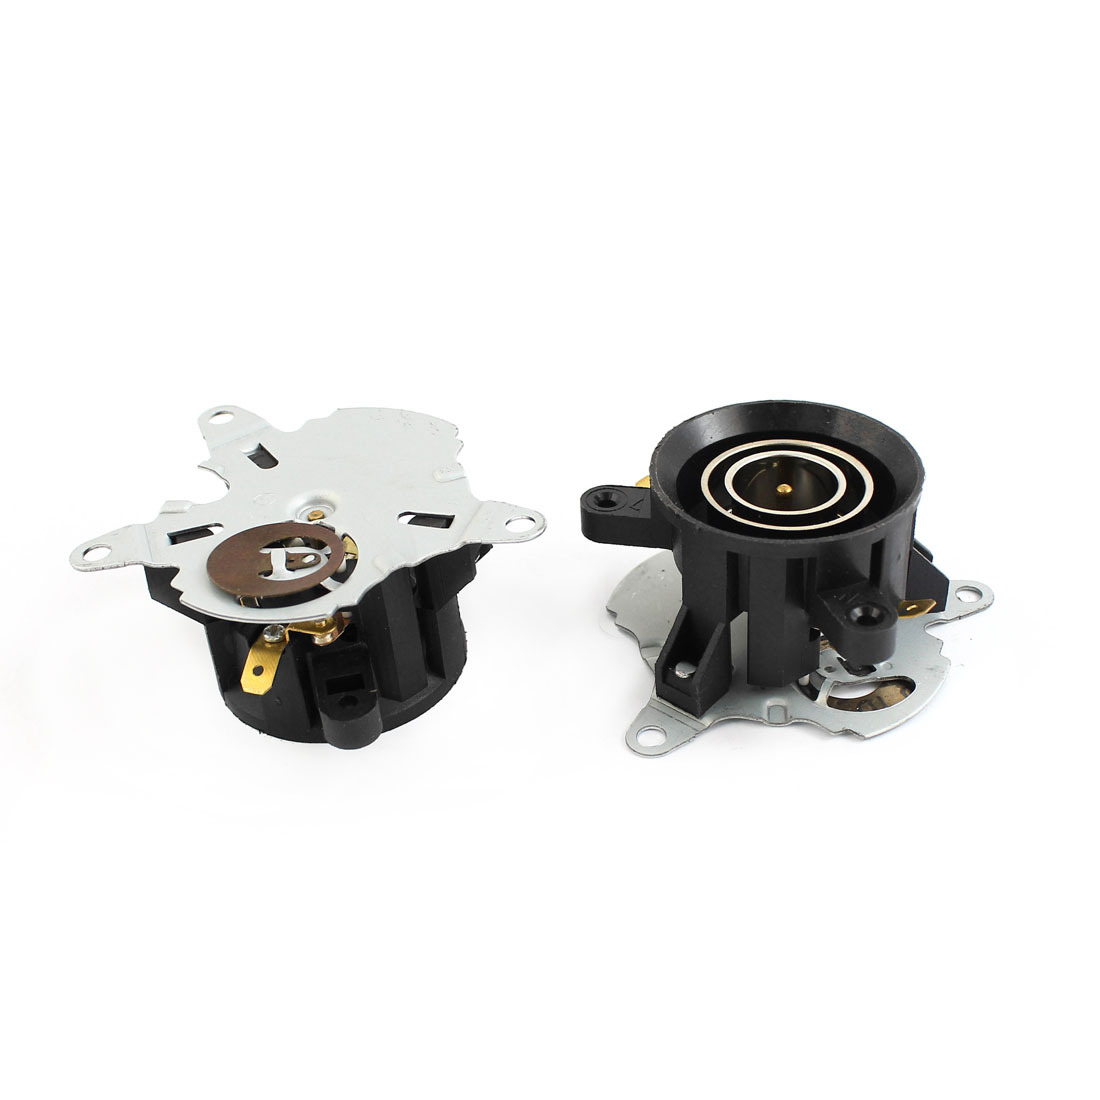 AC 110-250V 13A Normal Close 2 Terminal Temperature Control Electric Kettle Thermostat 2pcs